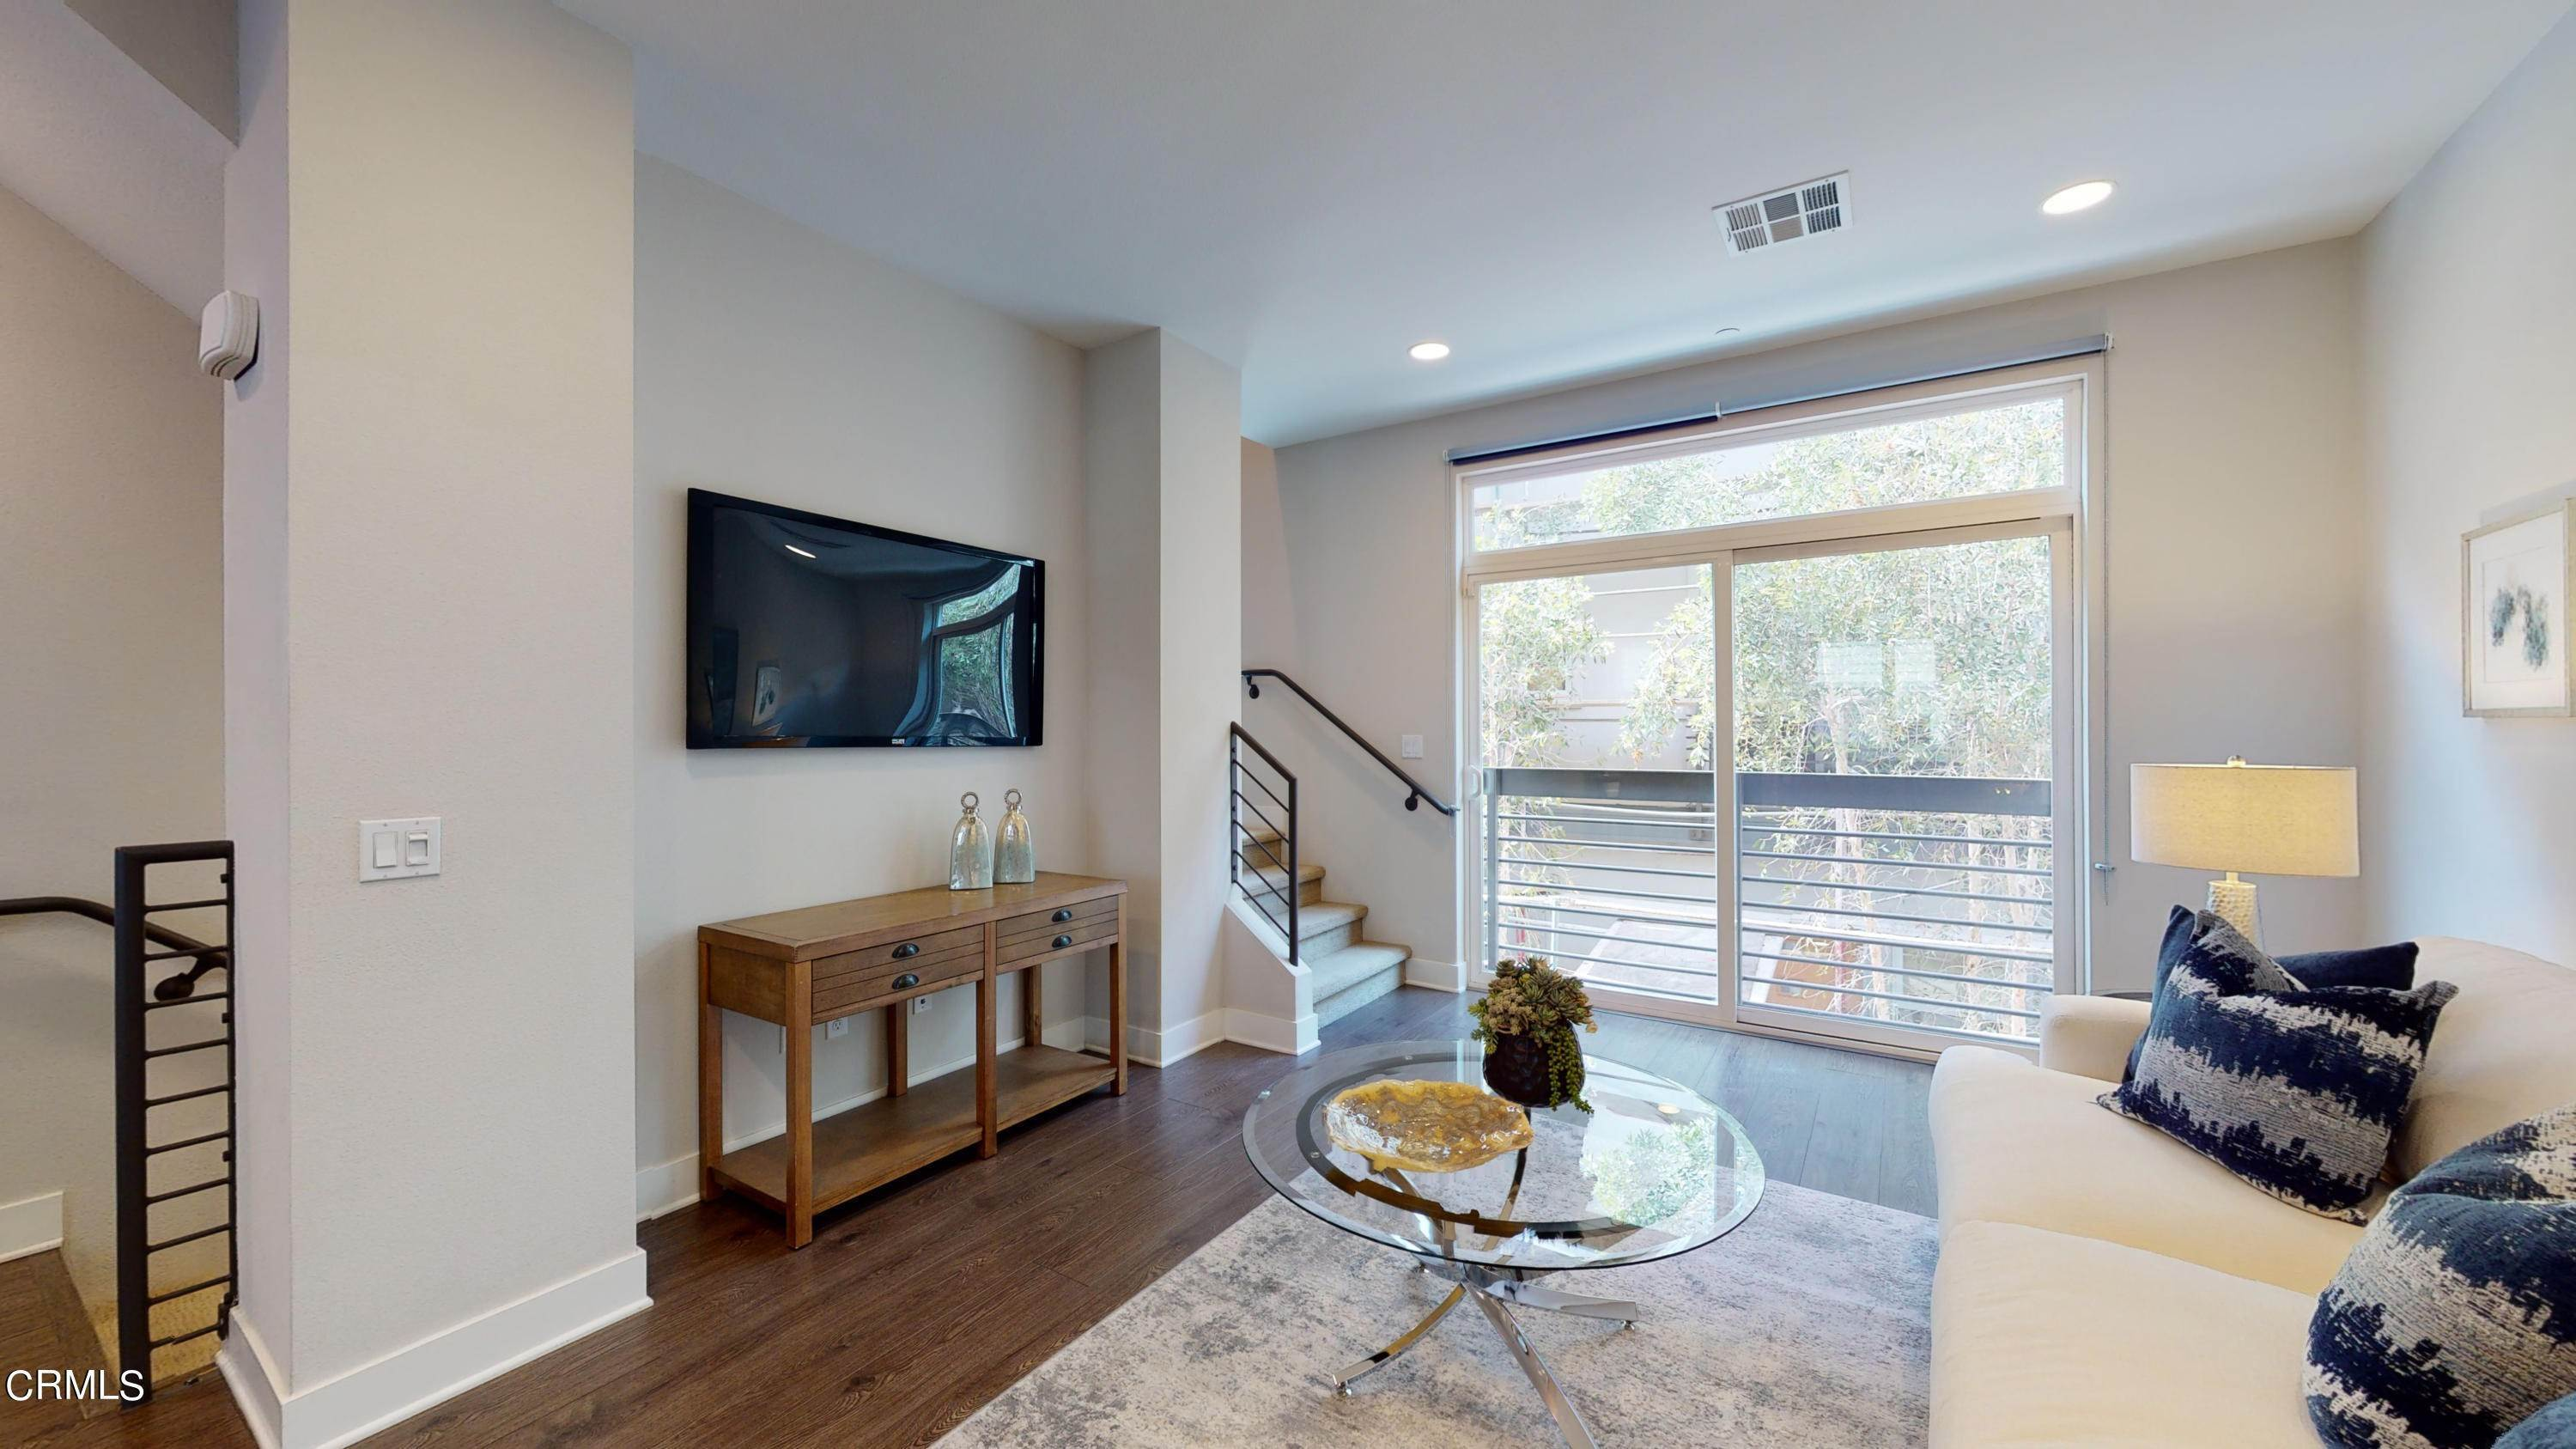 12. townhouses for Sale at 2753 Waverly Drive 302 #302 2753 Waverly Drive 302 Los Angeles, California 90039 United States